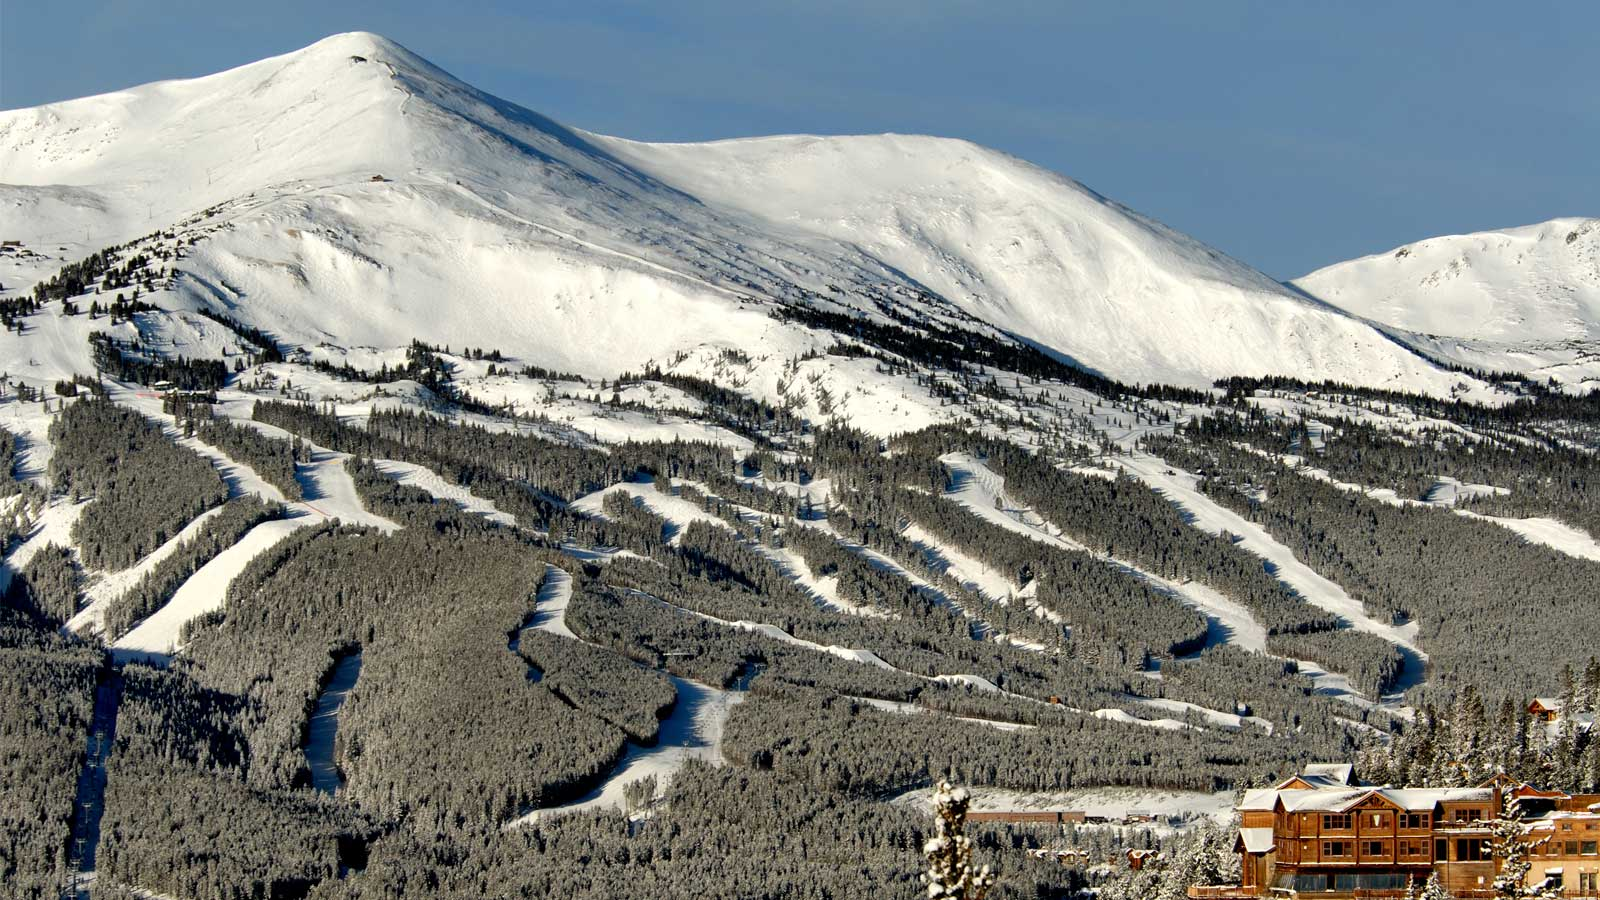 Mountains, 5-Star Meals, and Craft Beer: The 4-Day Weekend in Breckenridge, Colorado